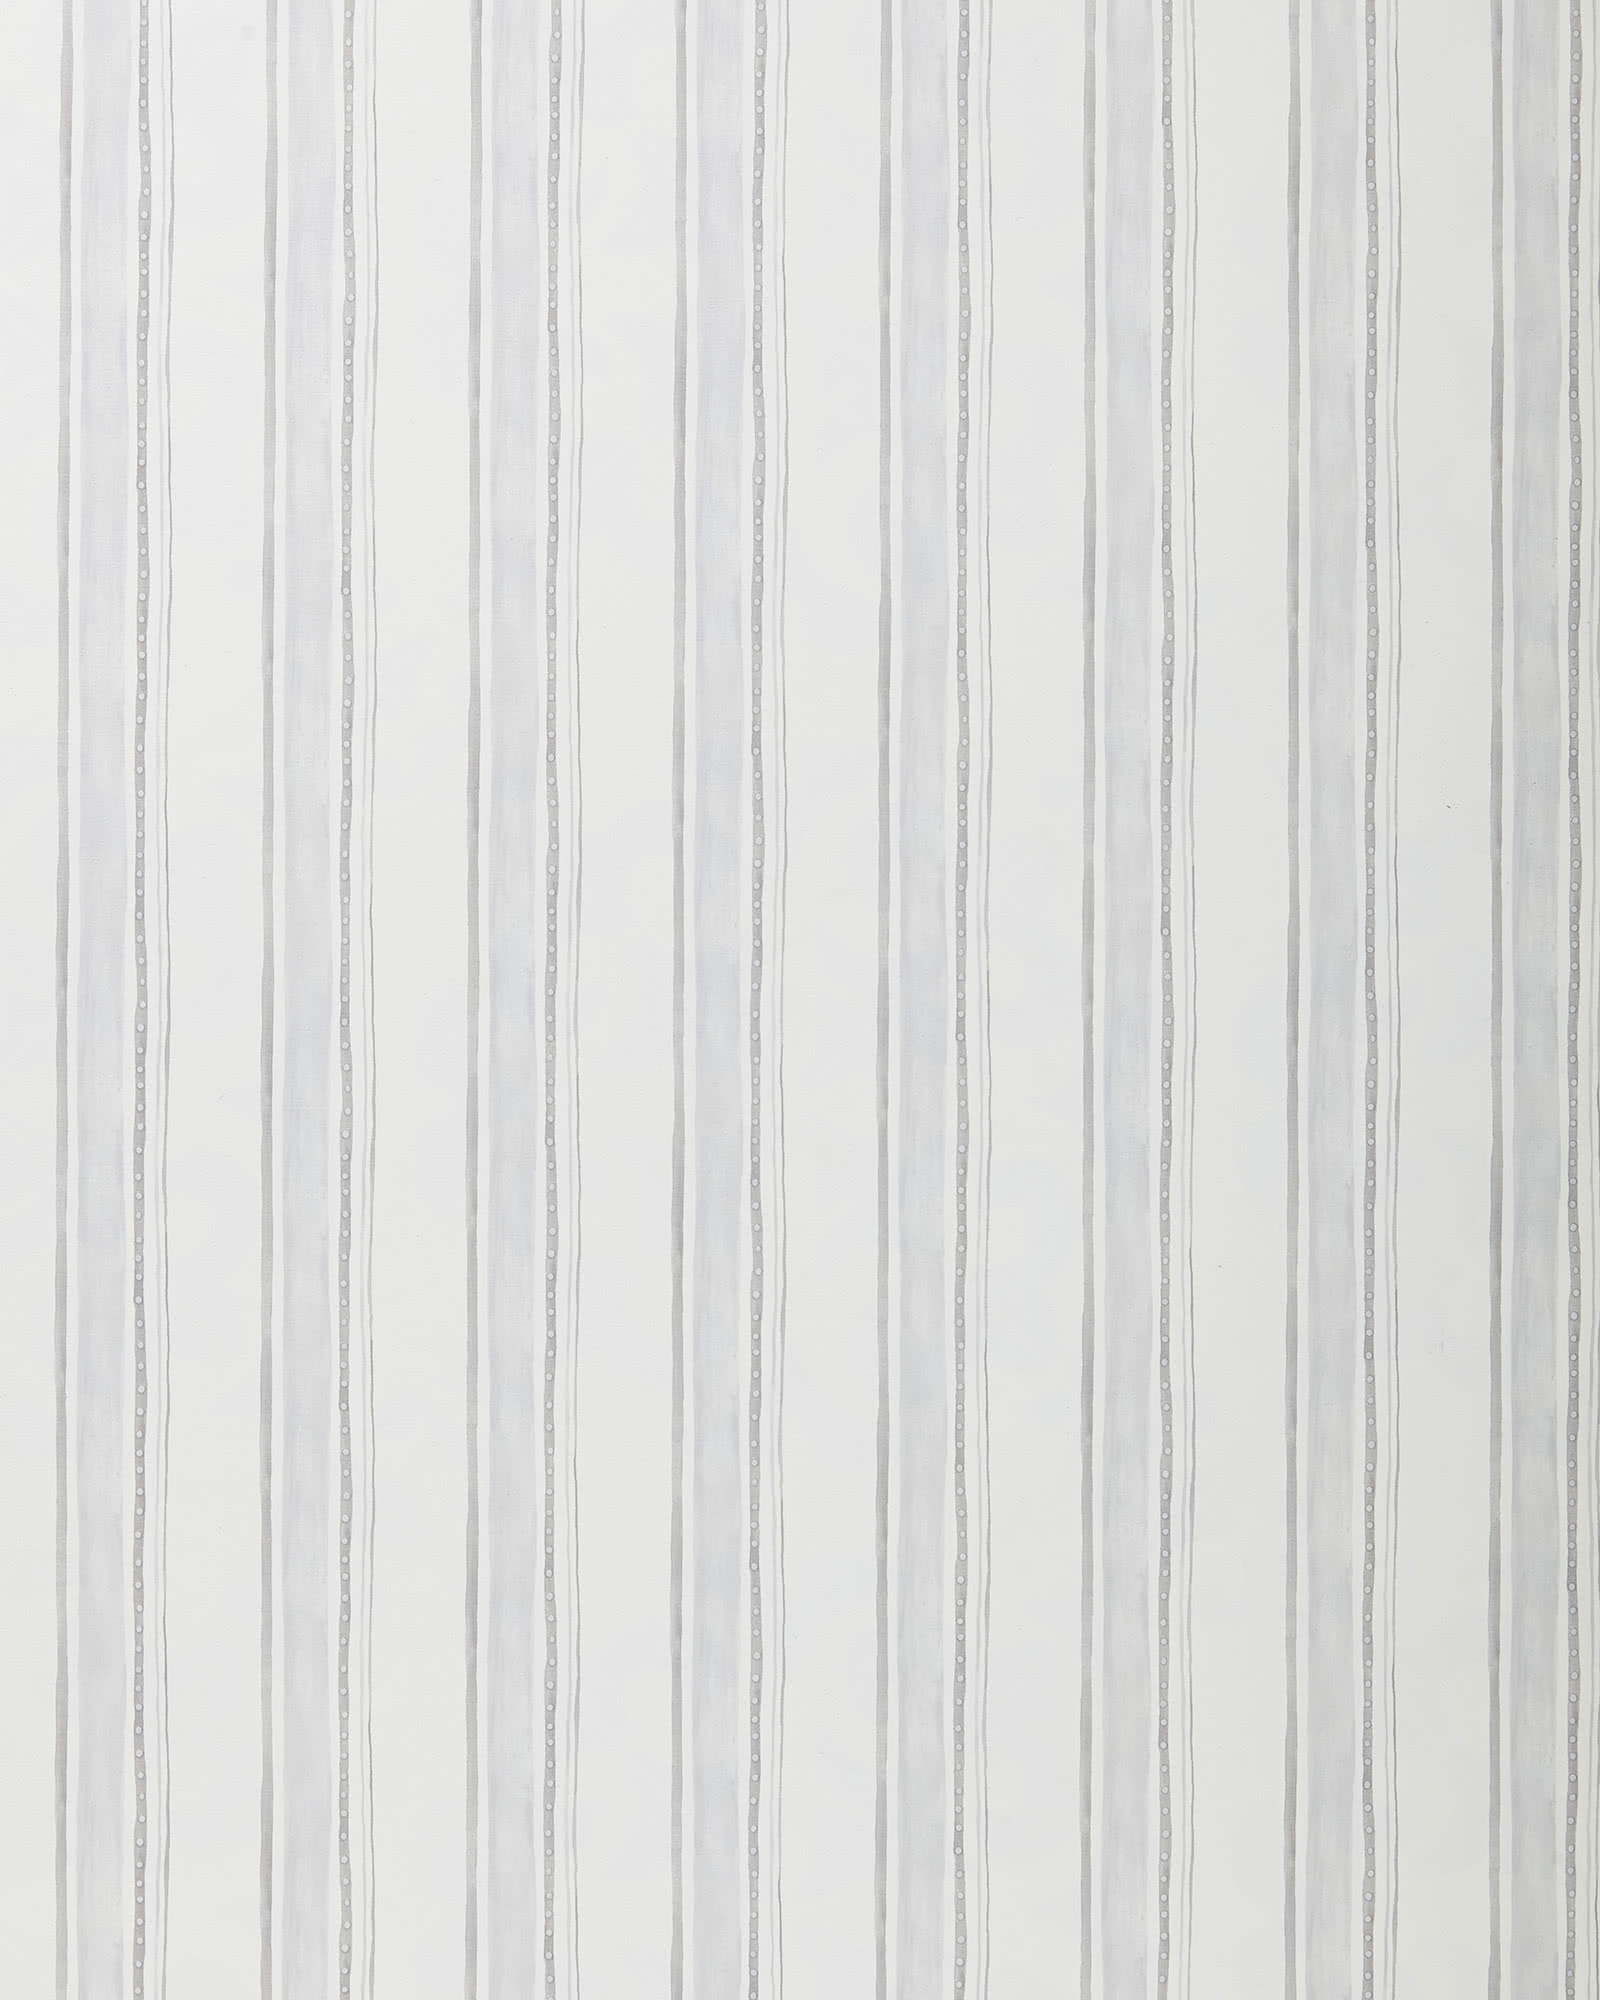 Acadia Stripe Wallpaper Swatch,